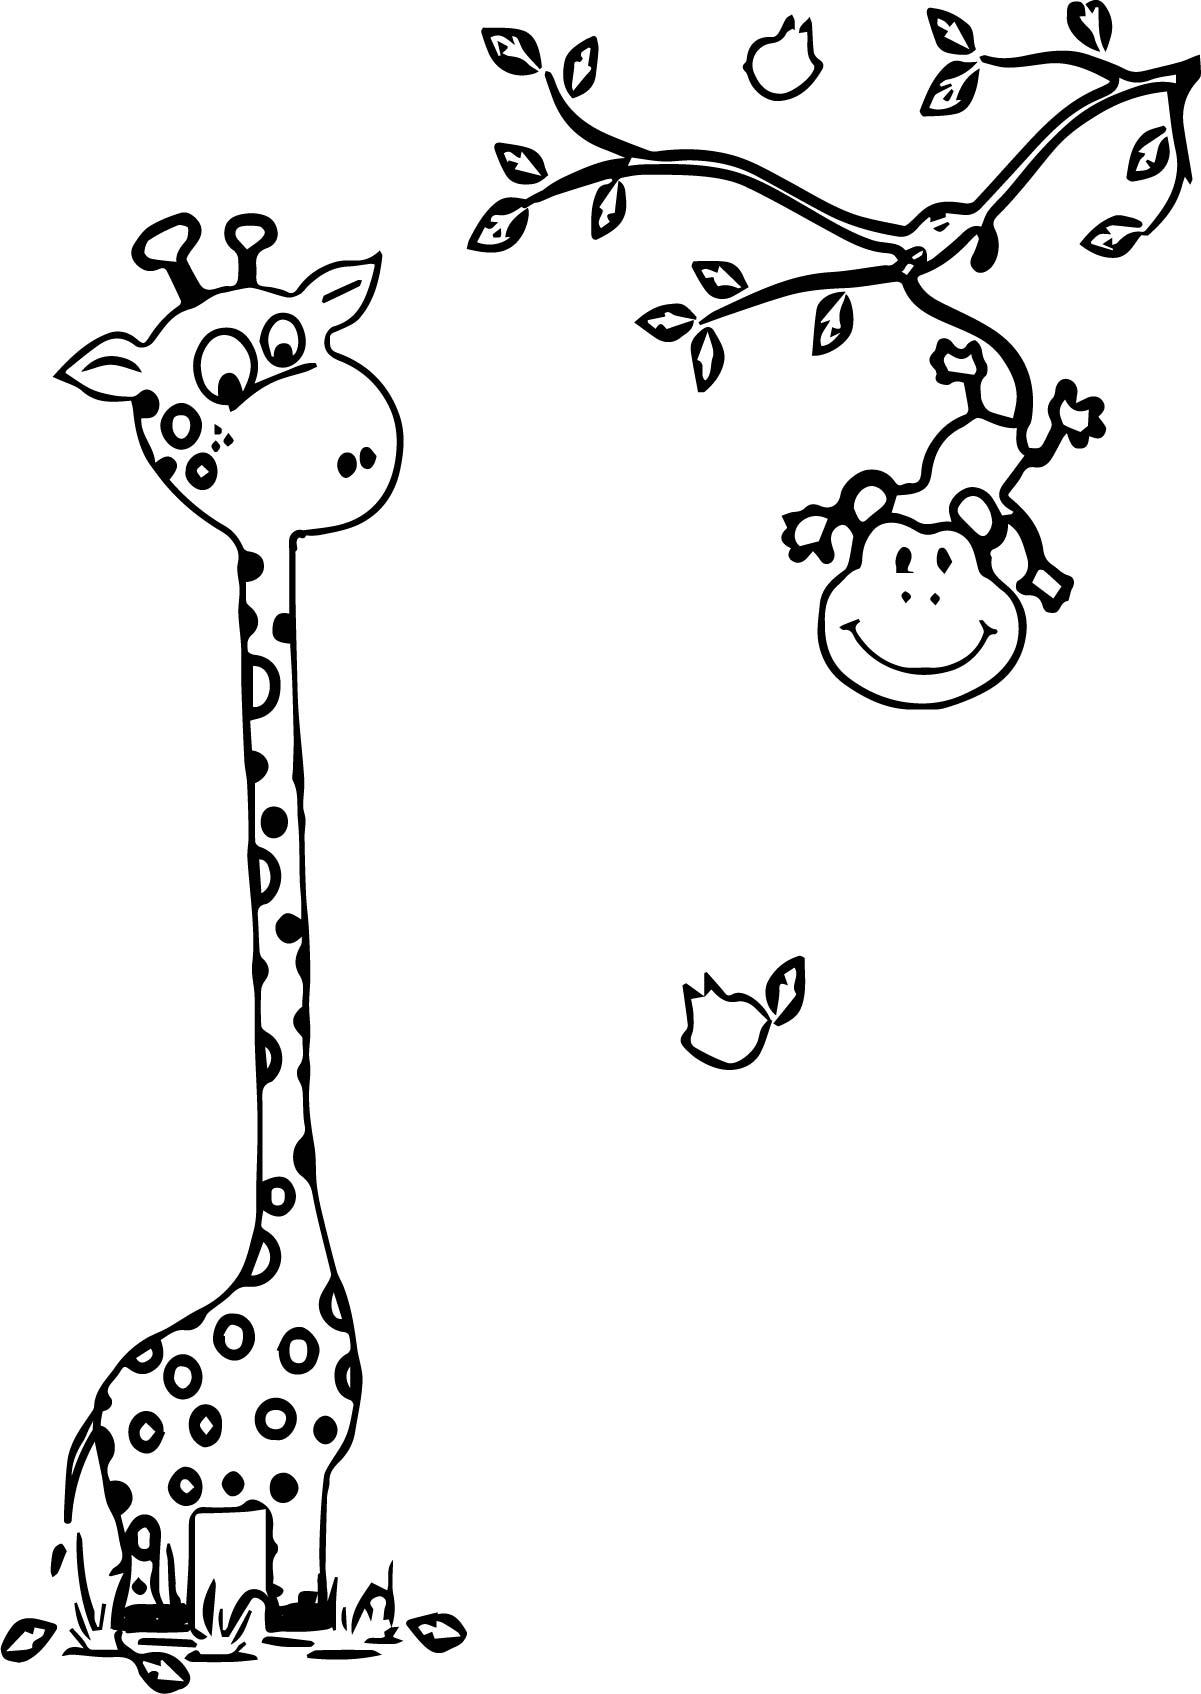 Giraffe And Monkey Coloring Page | Wecoloringpage